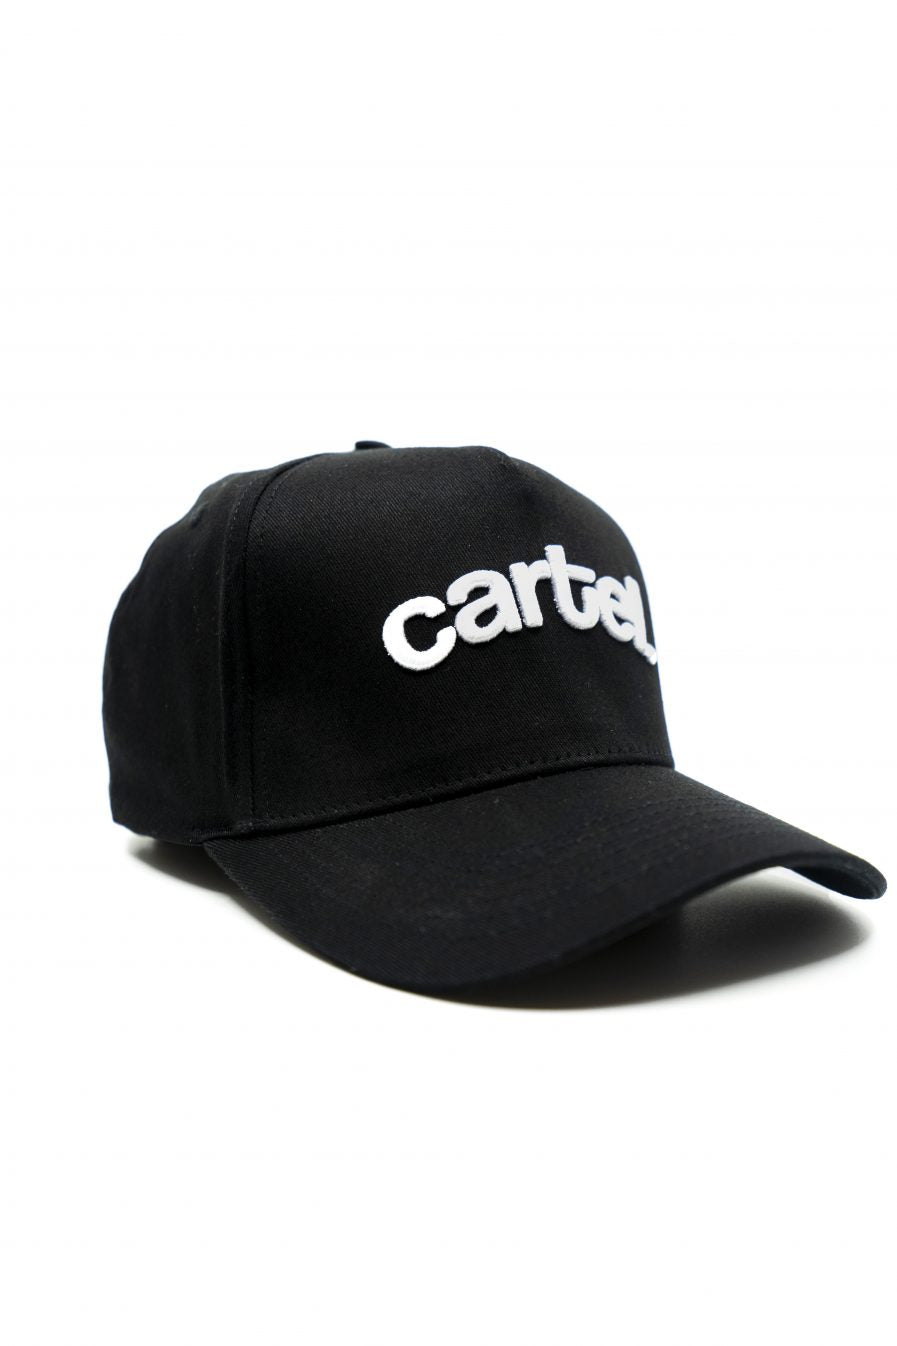 Snapback - Black + White text - CartelStoreOfficial